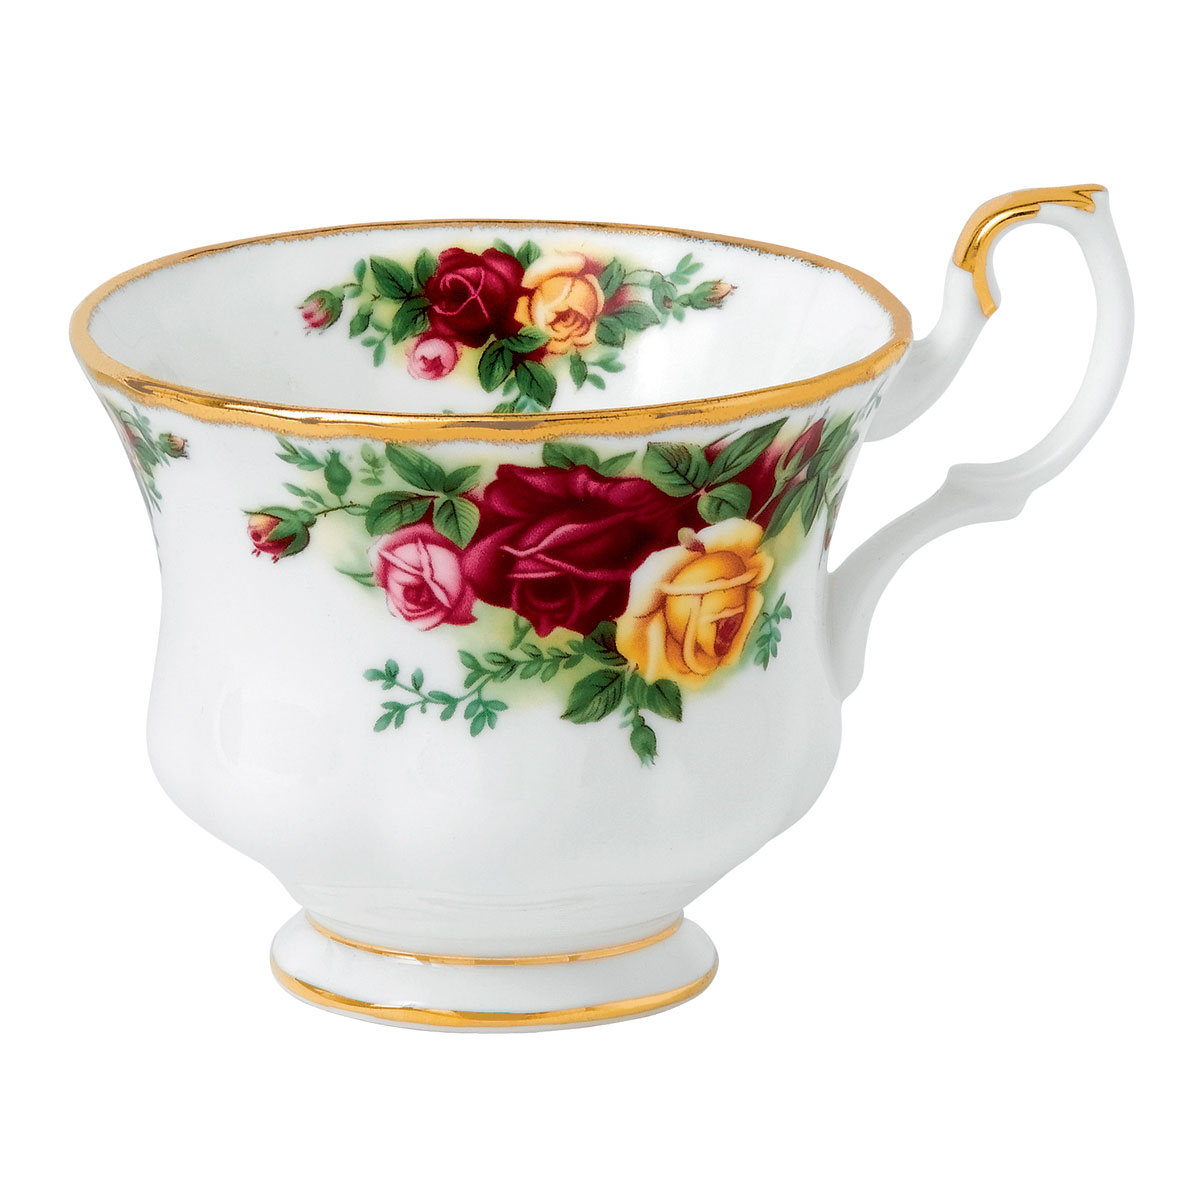 Royal Albert Old Country Roses Teacup 6.5 Oz